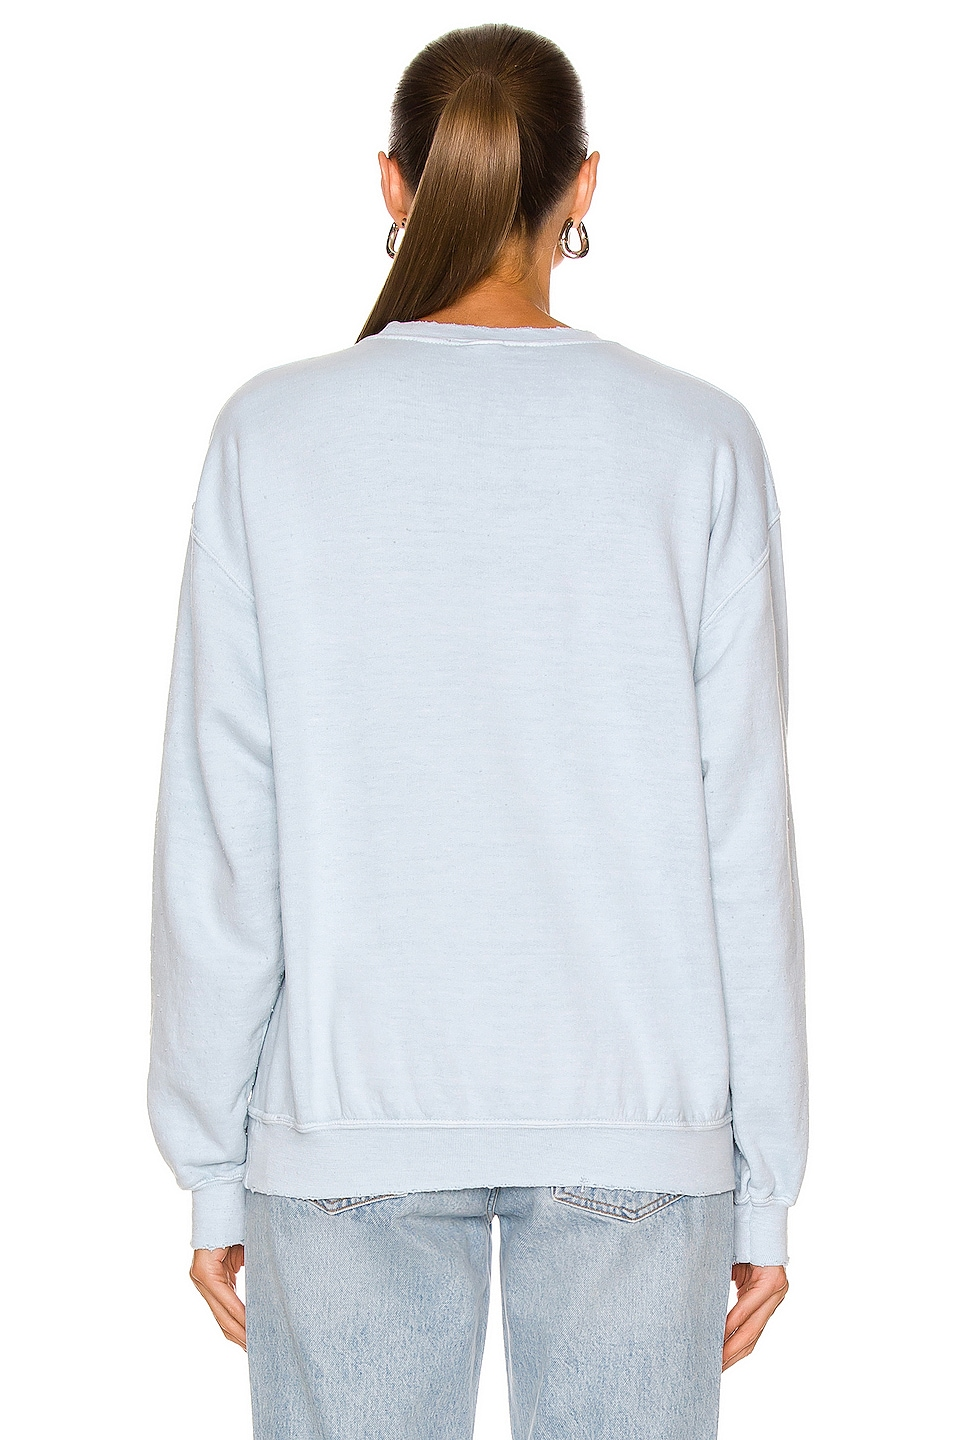 Image 3 of Madeworn The Rolling Stones Chainstitch Sweatshirt in Blue Haze